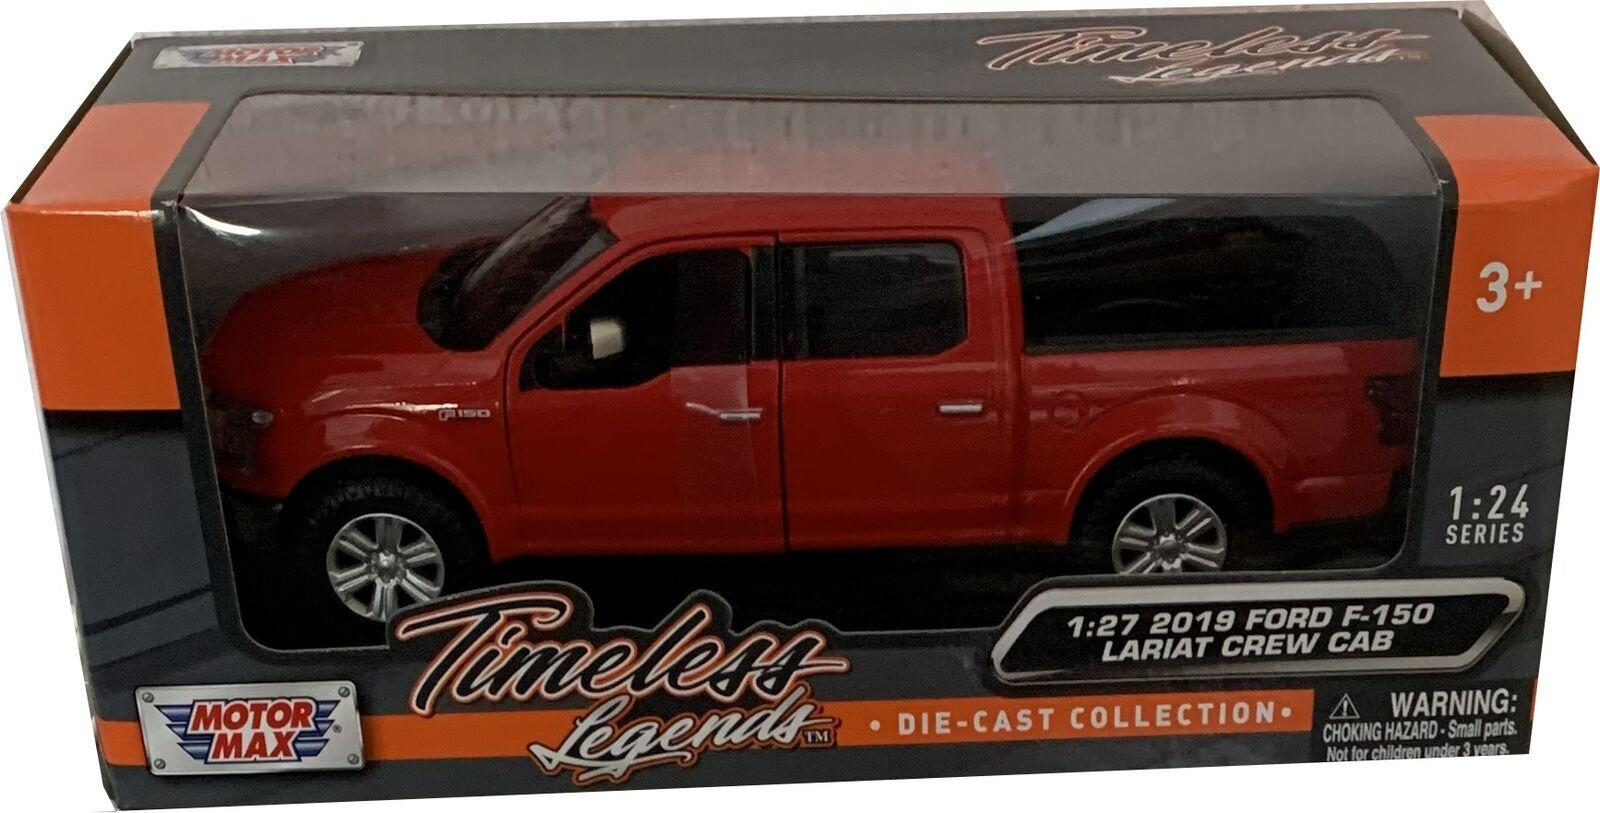 Ford F-150 Lariat Crew Cab 2019 in red 1:27 scale model from Motormax